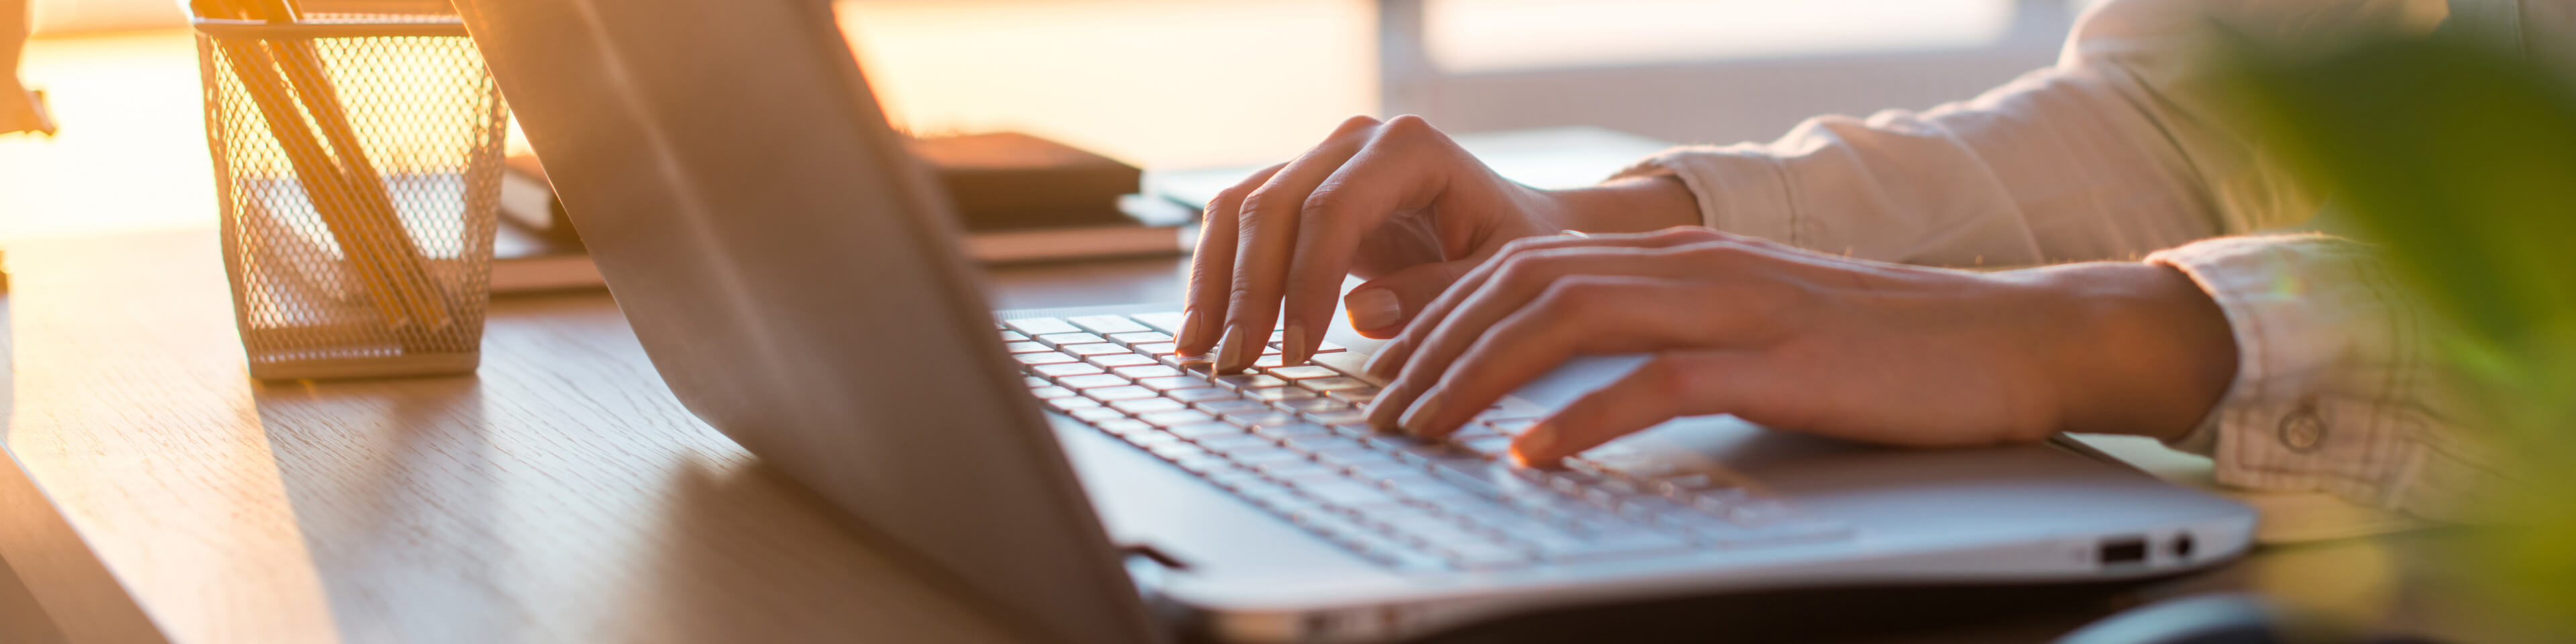 close up of person typing on a laptop